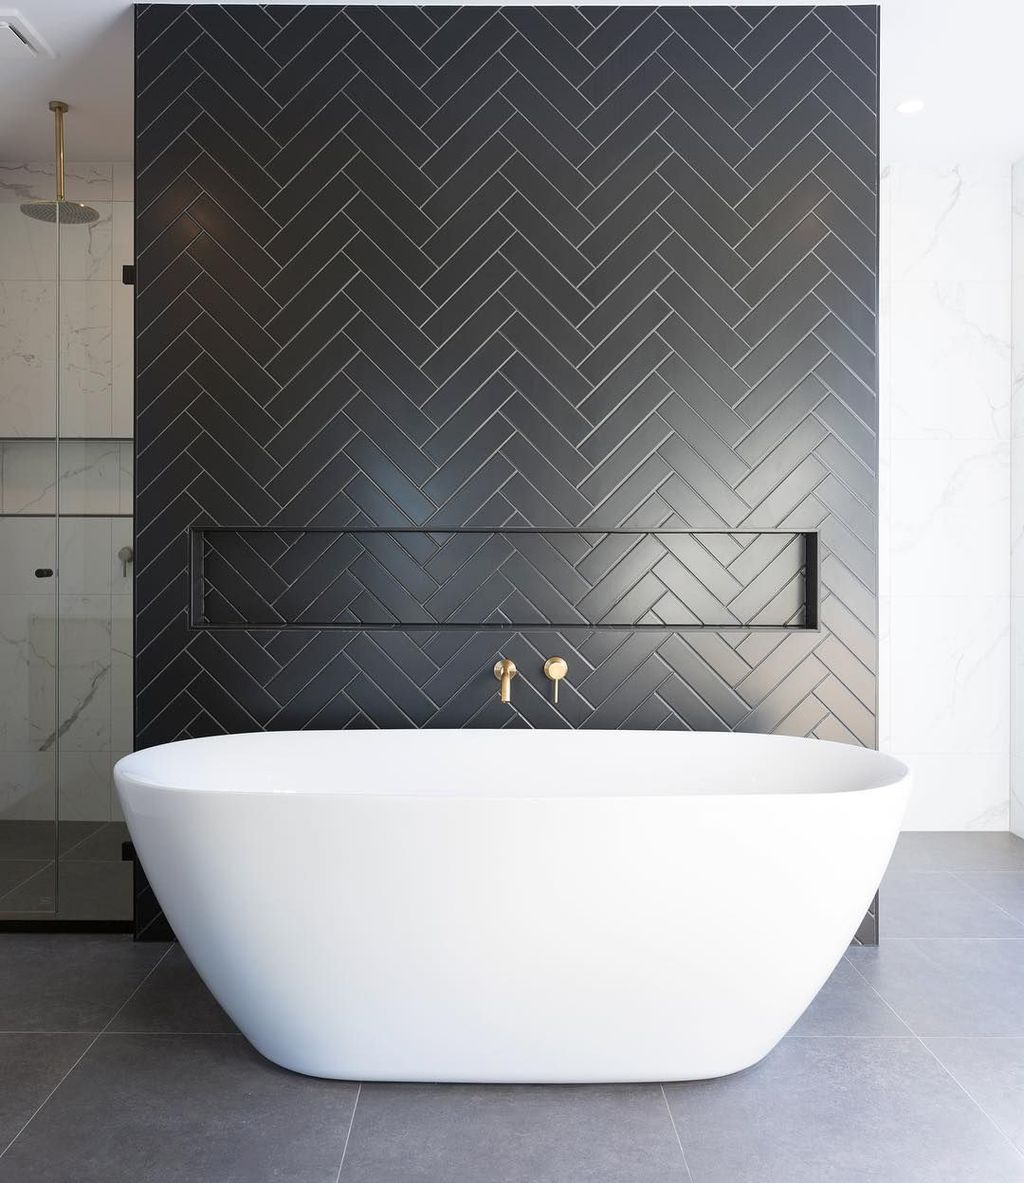 Amazing White Tile Bathroom Design Ideas Looks Elegant 25